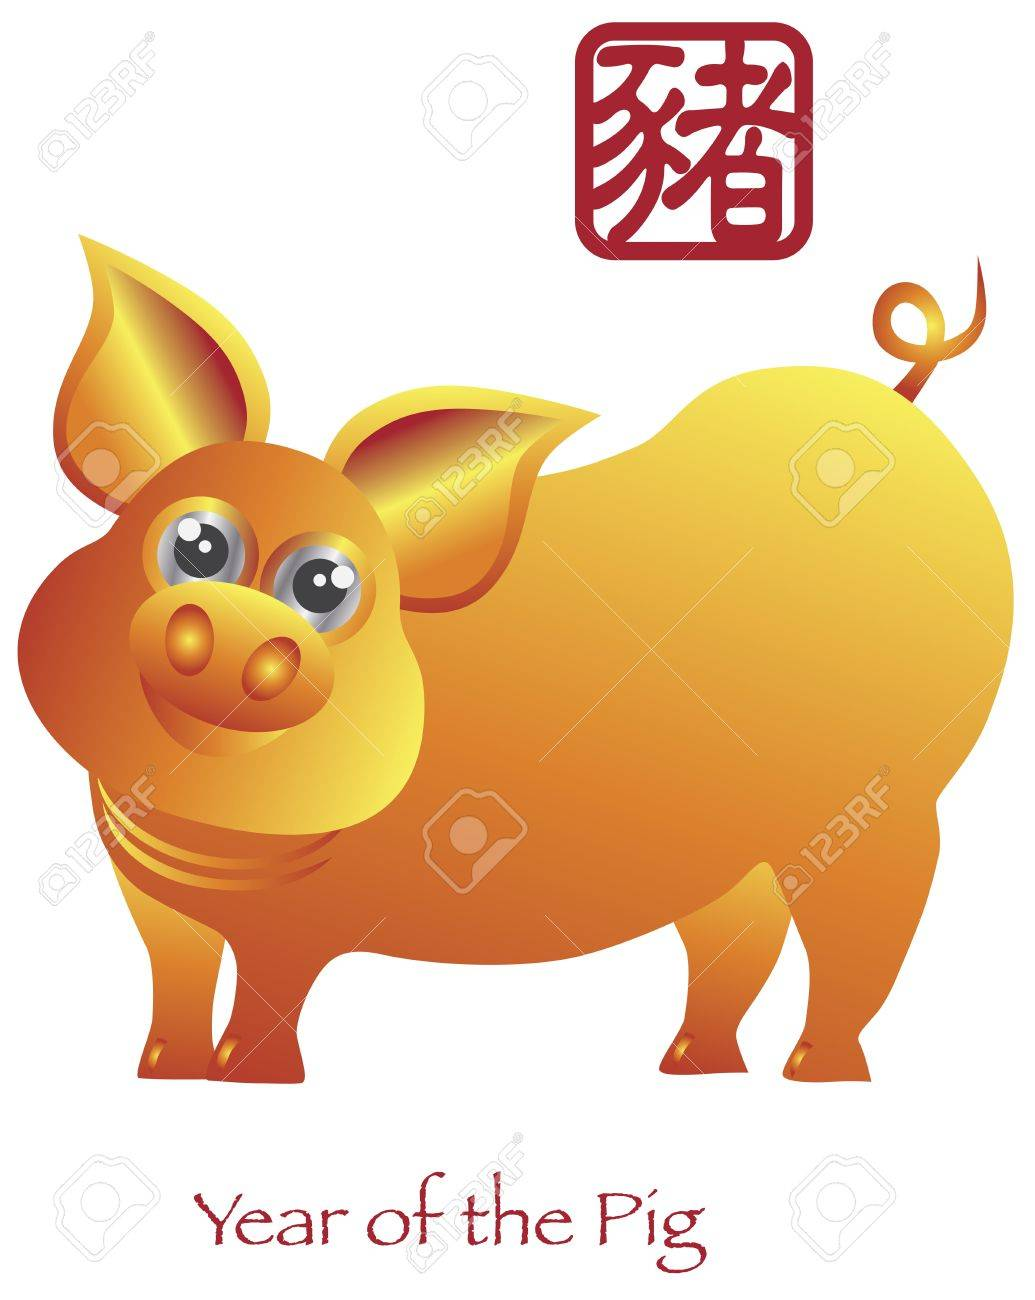 Chinese New Year of the Pig Zodiac with Chinese Pig Text Illustration.